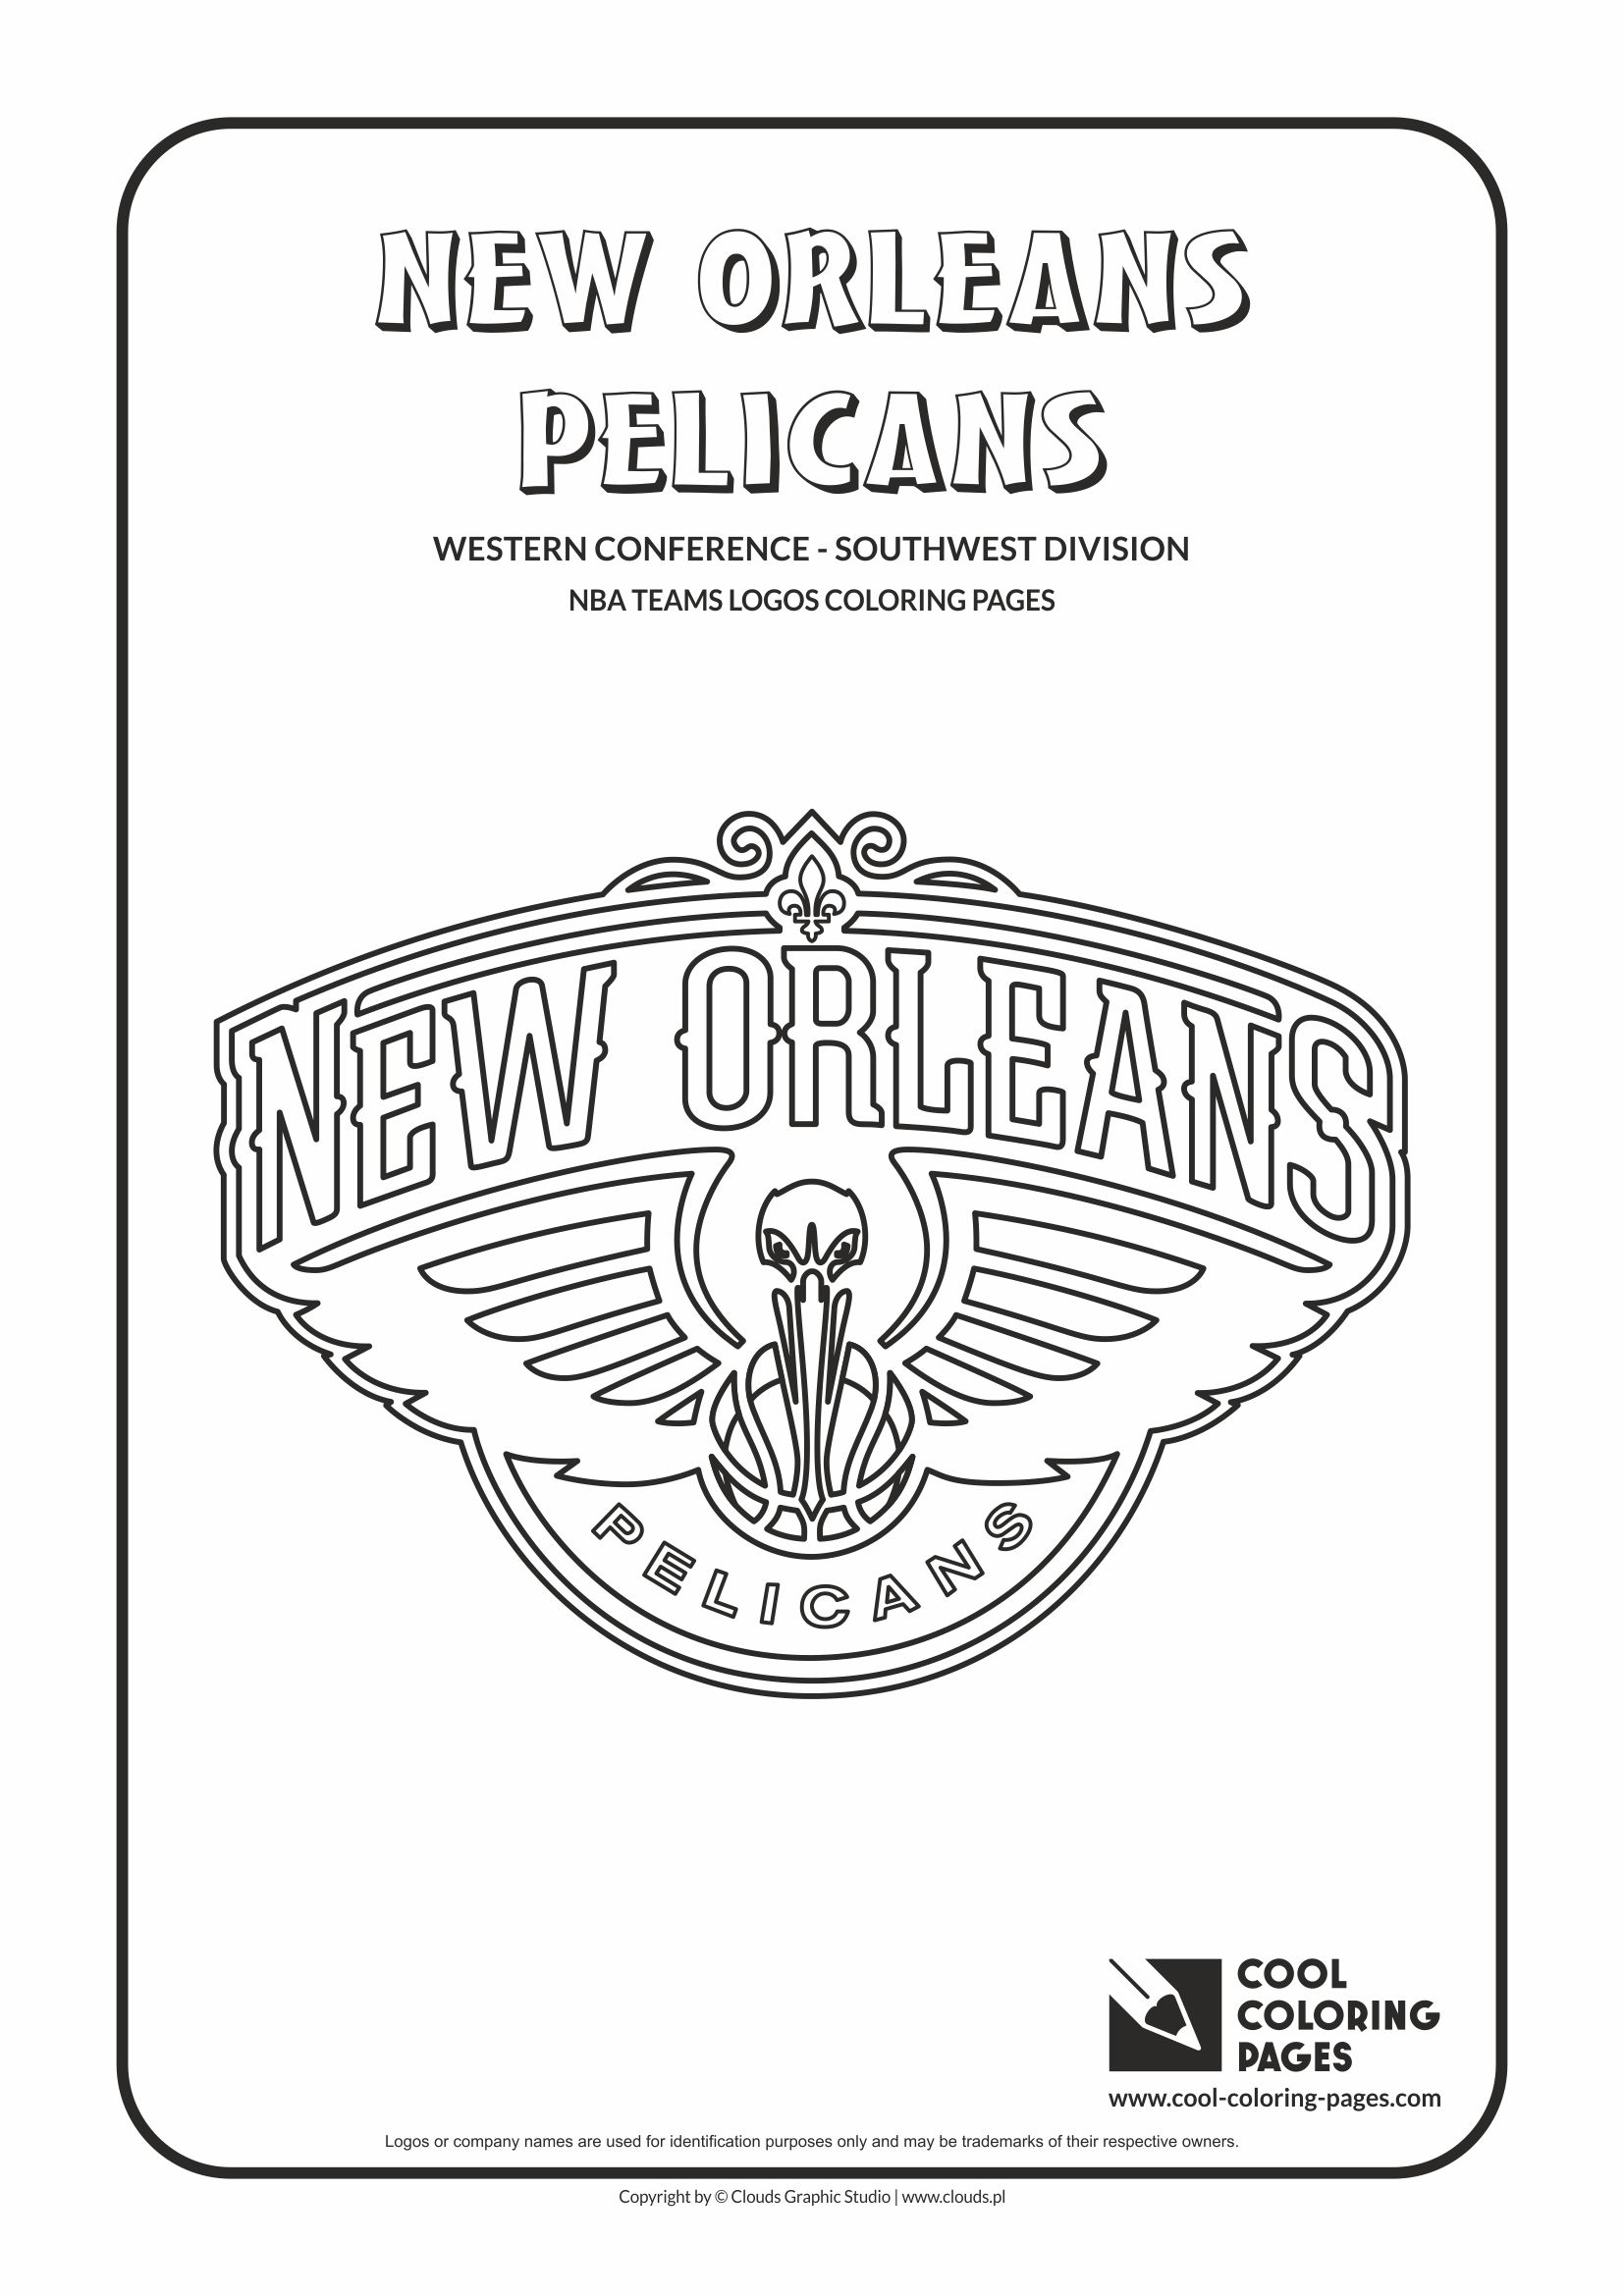 - Cool Coloring Pages NBA Teams Logos Coloring Pages - Cool Coloring